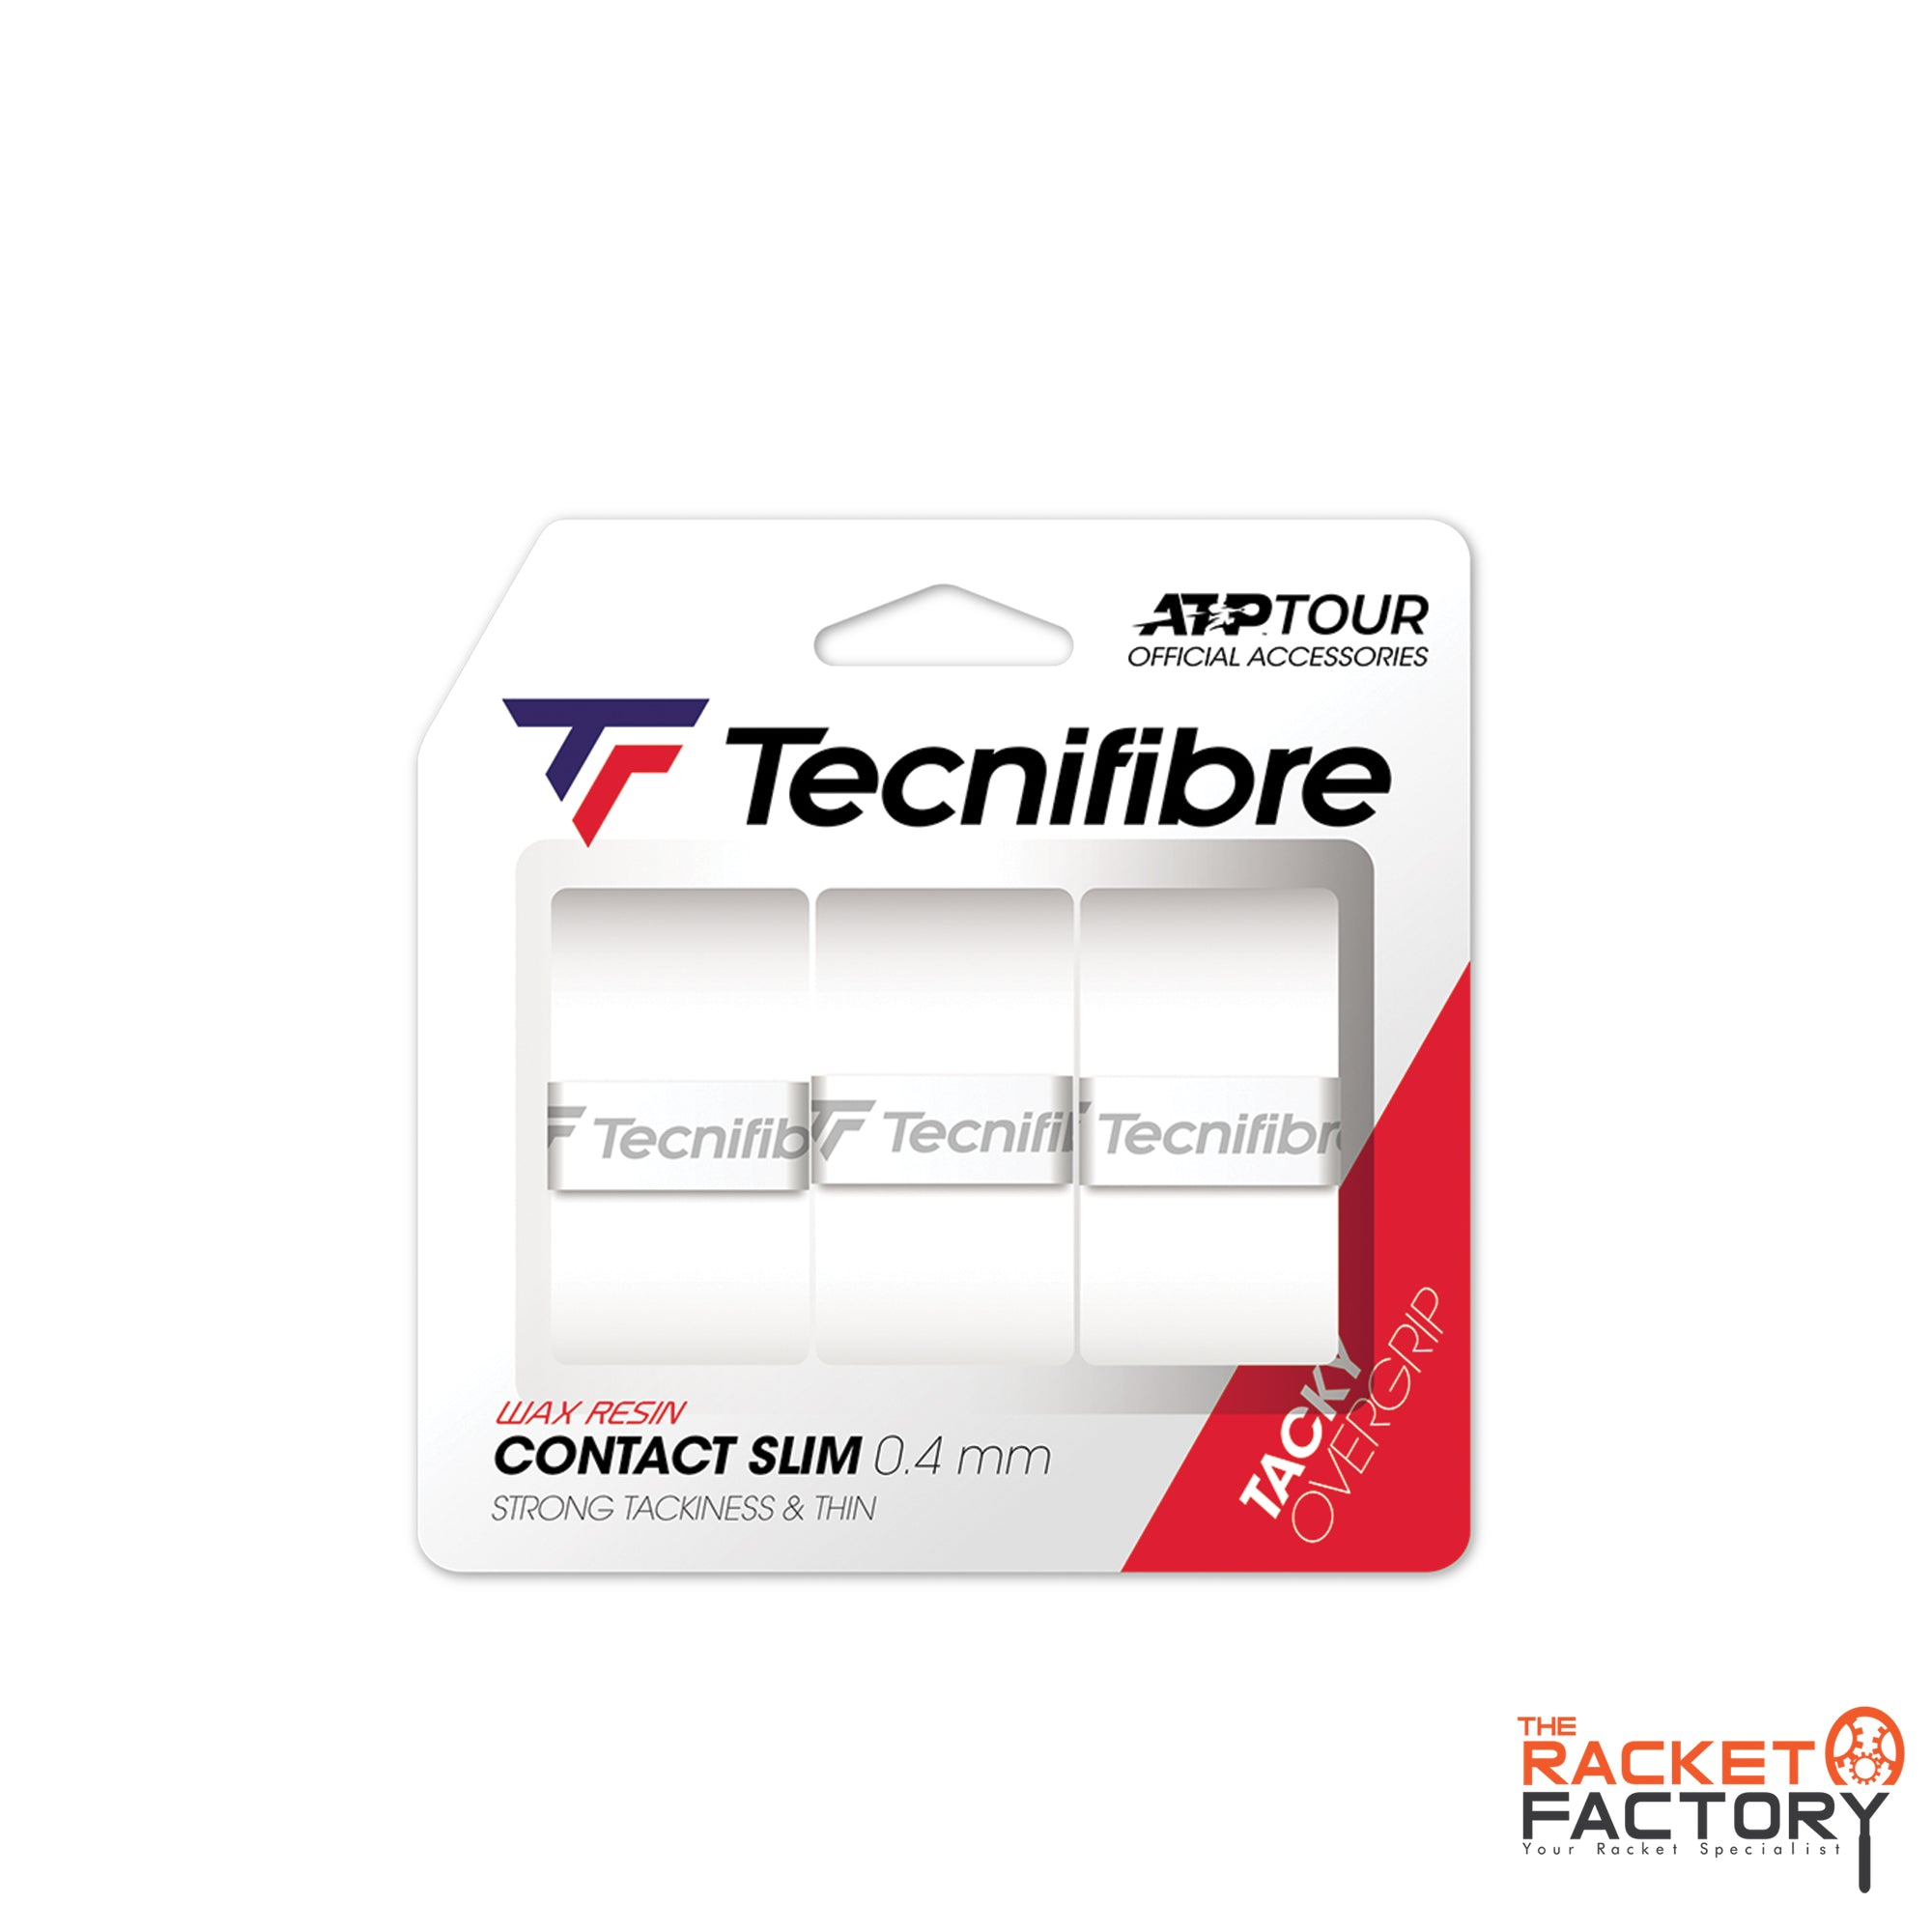 Tecnifibre ATP Contact Slim Over Grip - Pack of 3 (White)